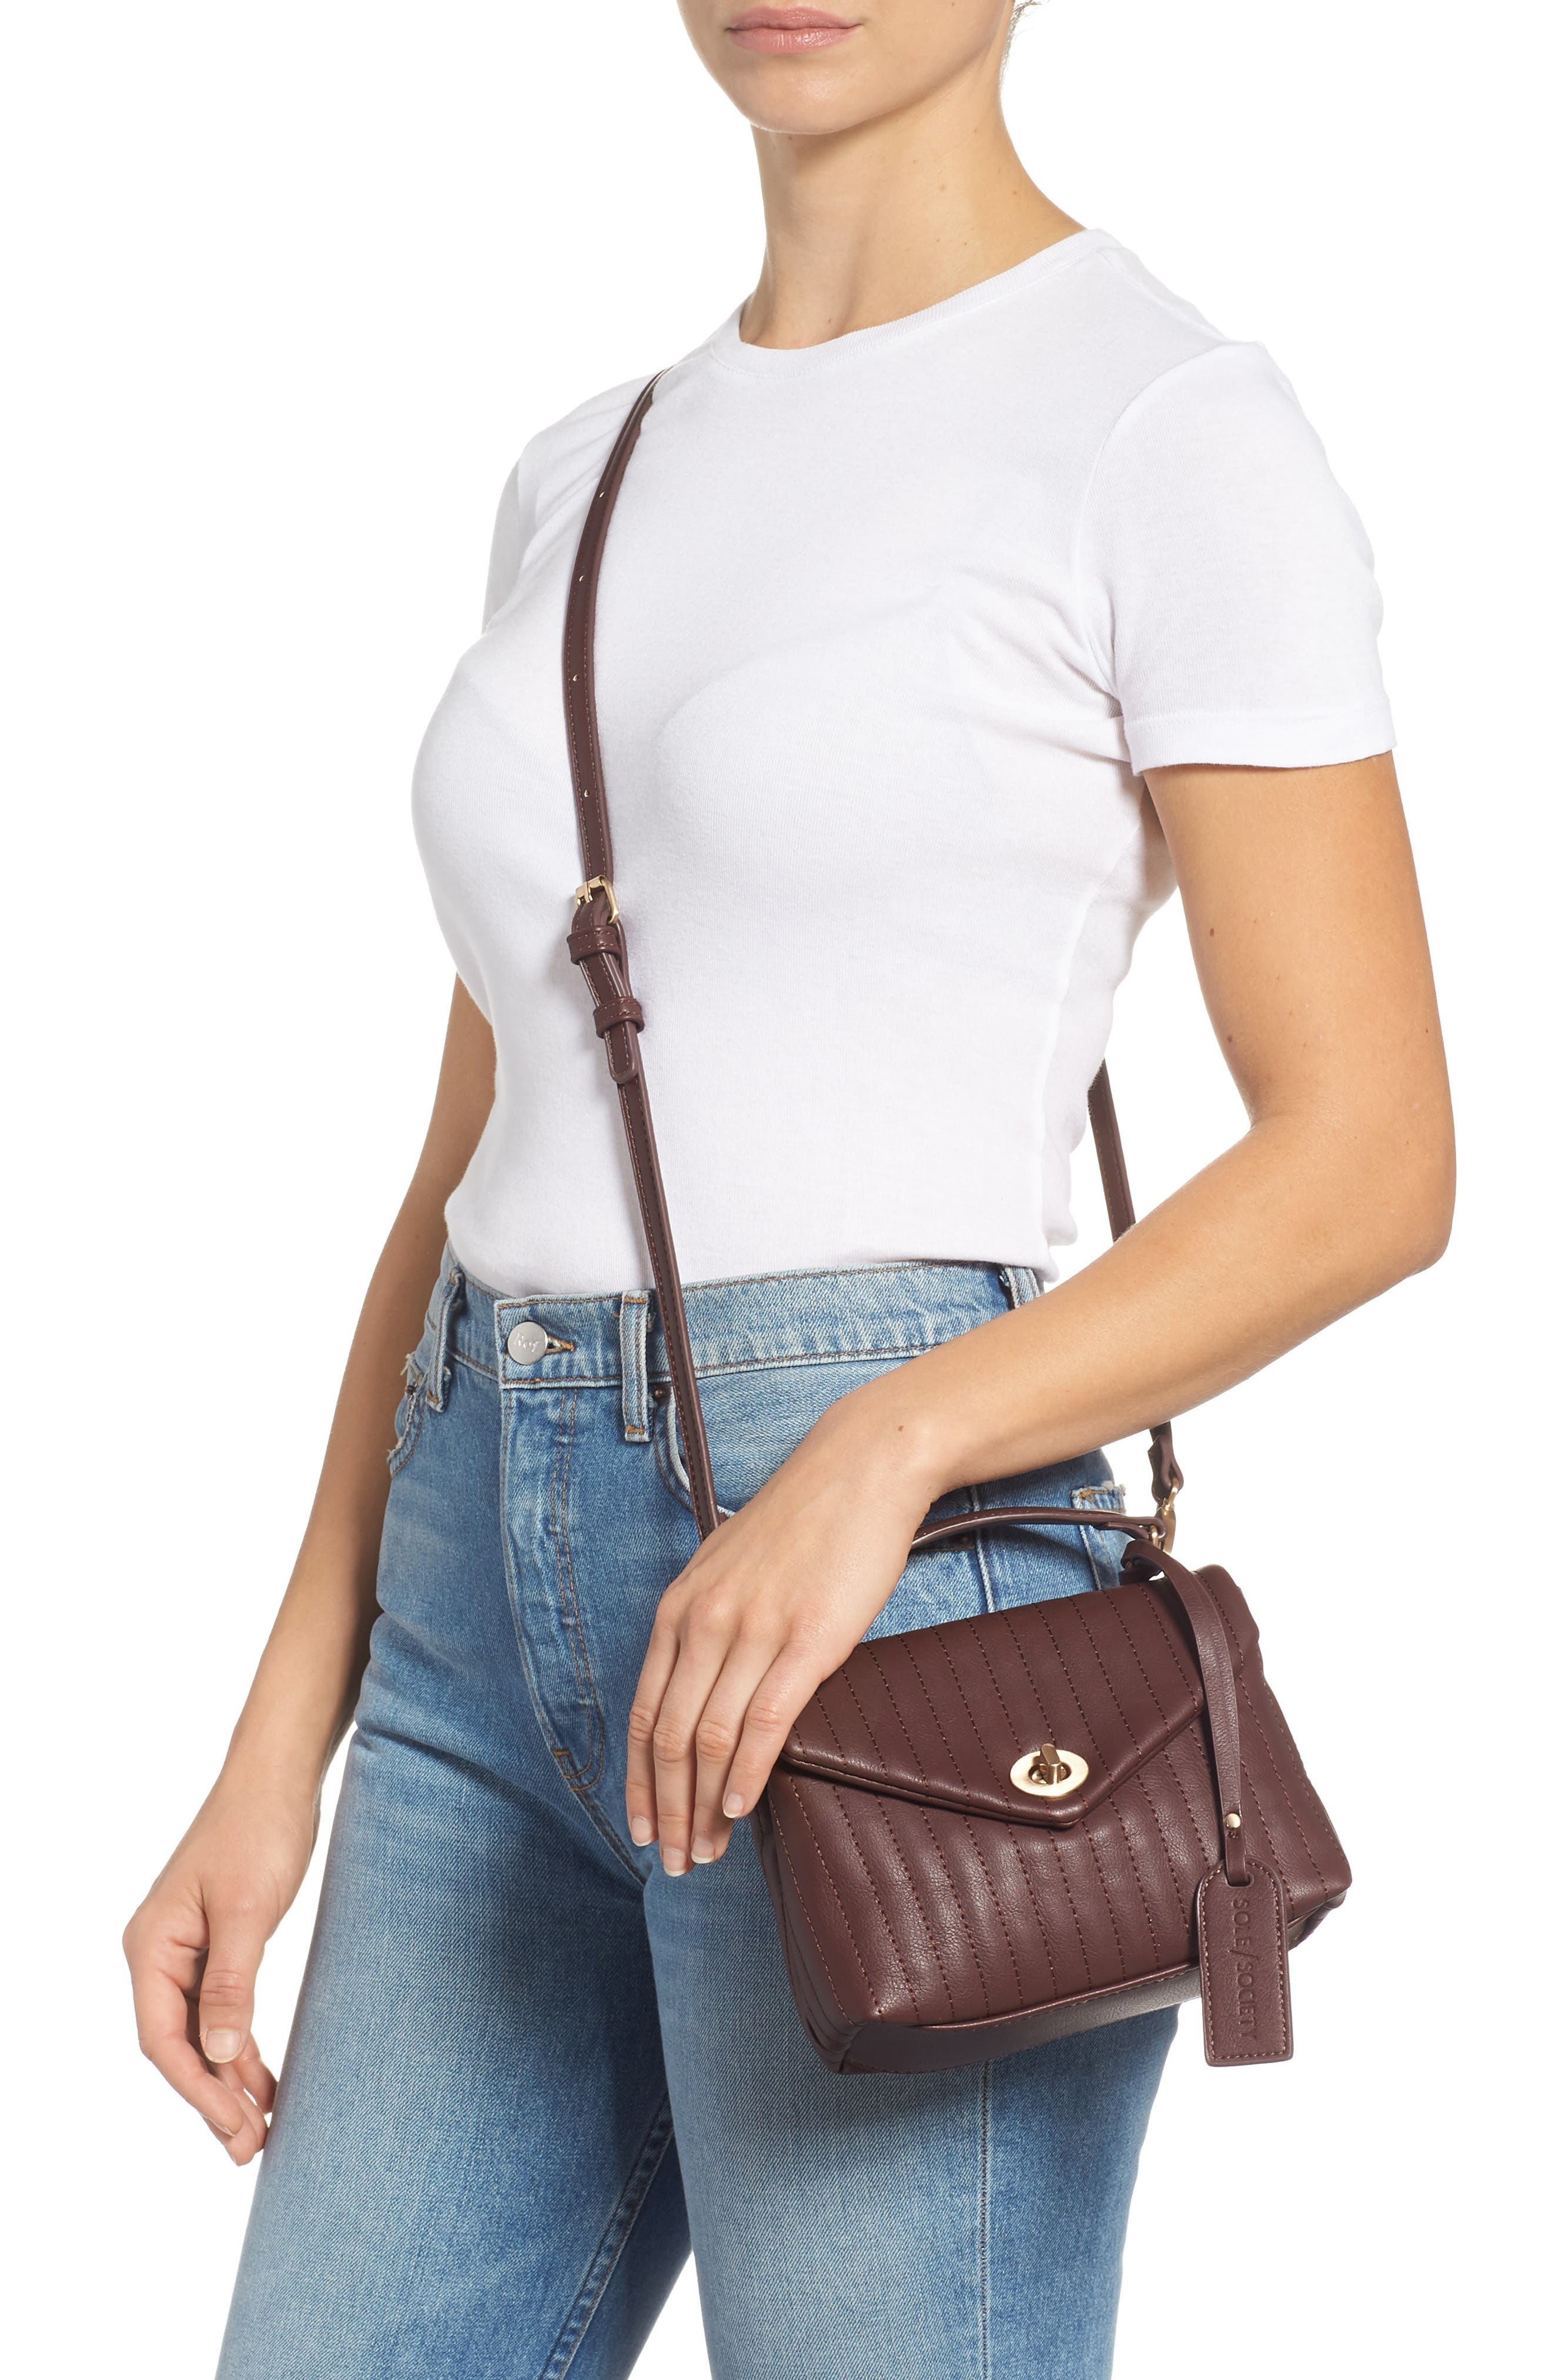 SOLE SOCIETY, Urche Faux Leather Crossbody Bag, Alternate thumbnail 2, color, OXBLOOD